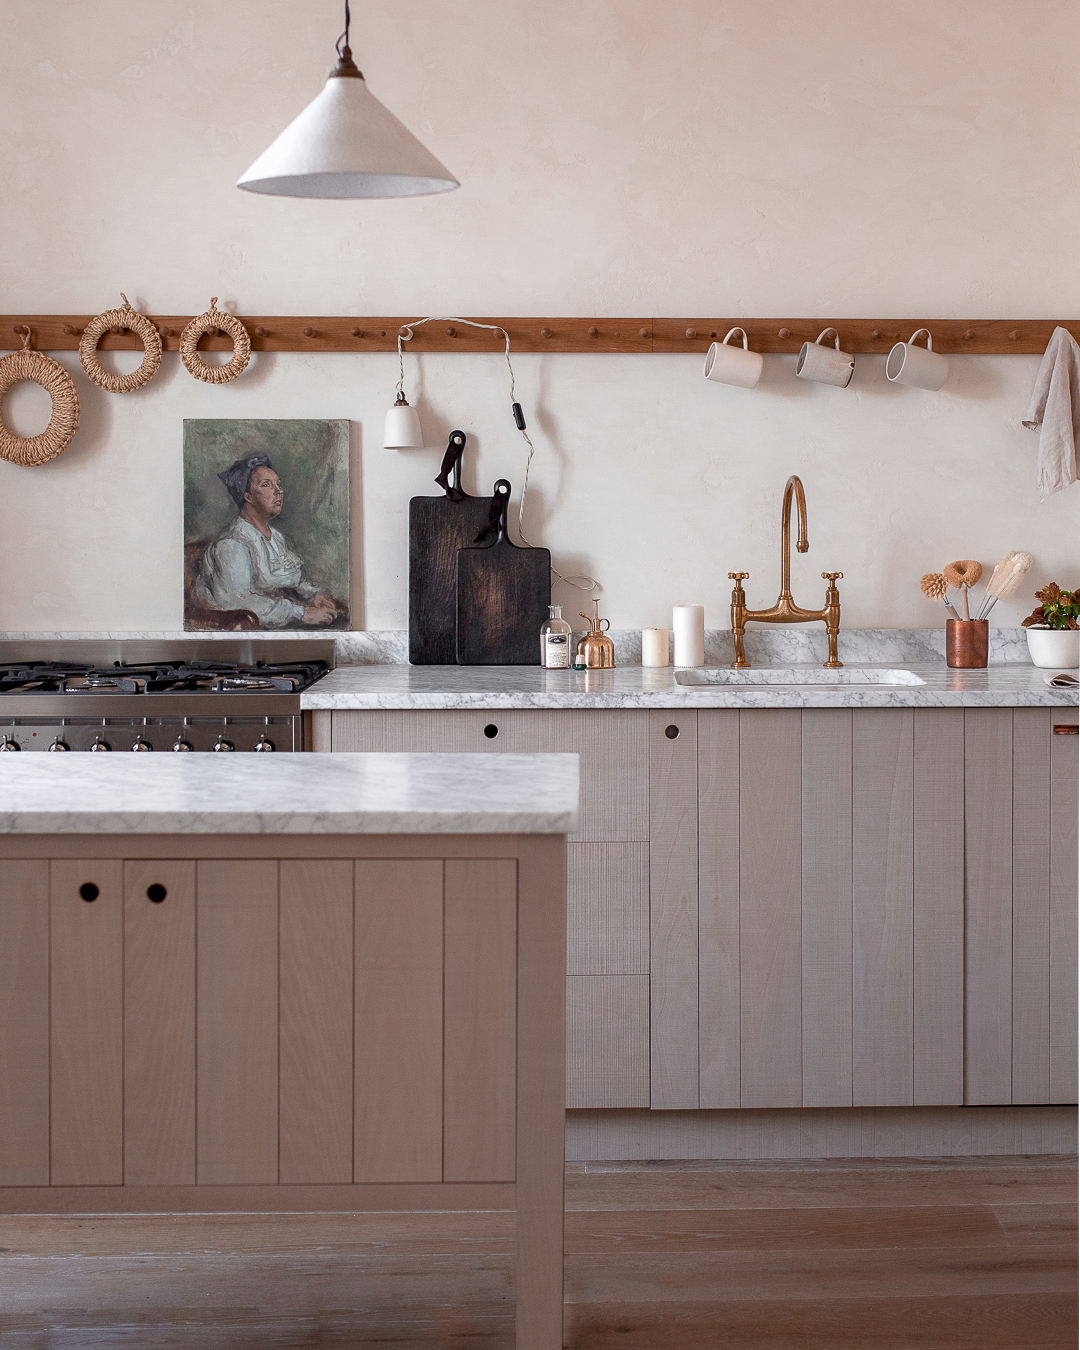 This ethereal kitchen in Edinburgh, Scotland is owned by Nina & Craig Plummer, owners of lifestyle store Ingredients LDN, selling beautiful natural home products. They chose the Sebastian Cox Kitchen by deVOL to encapsulate what their company stands for, a calmer, slower pace of living…